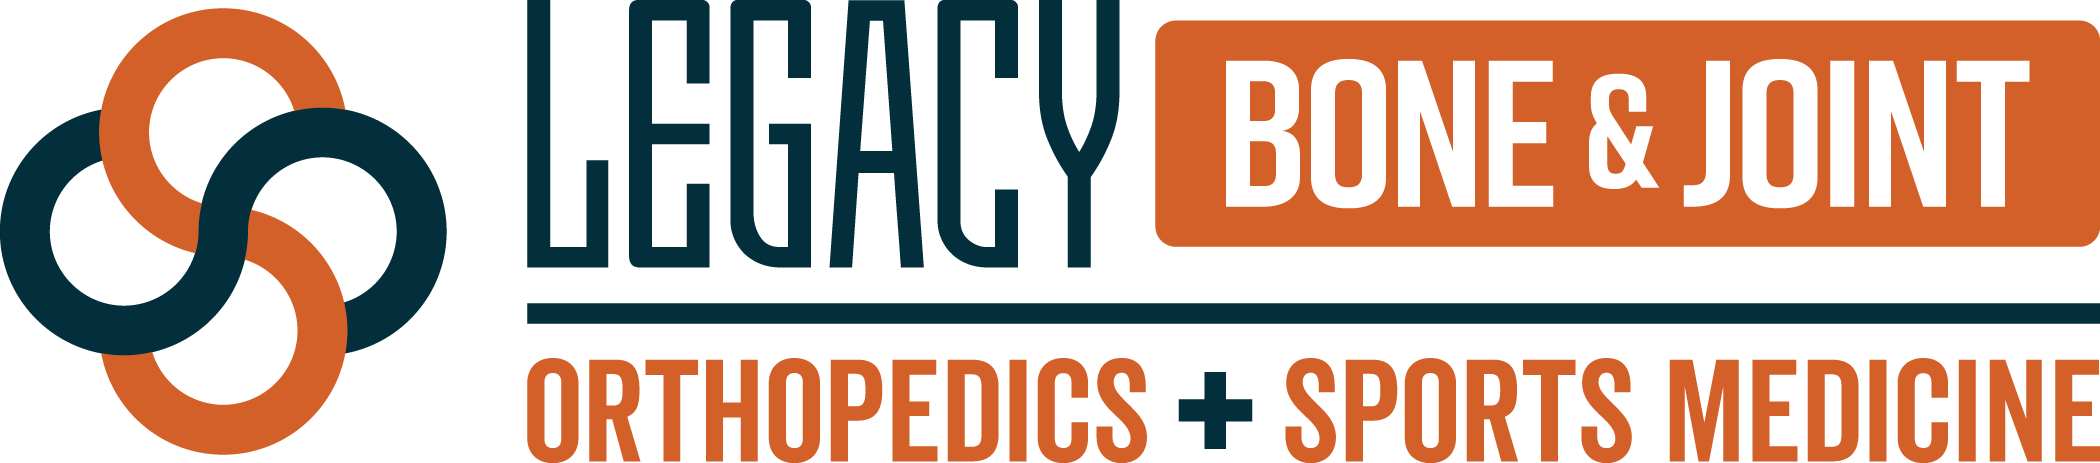 Legacy Bone and Joint Orthopedics